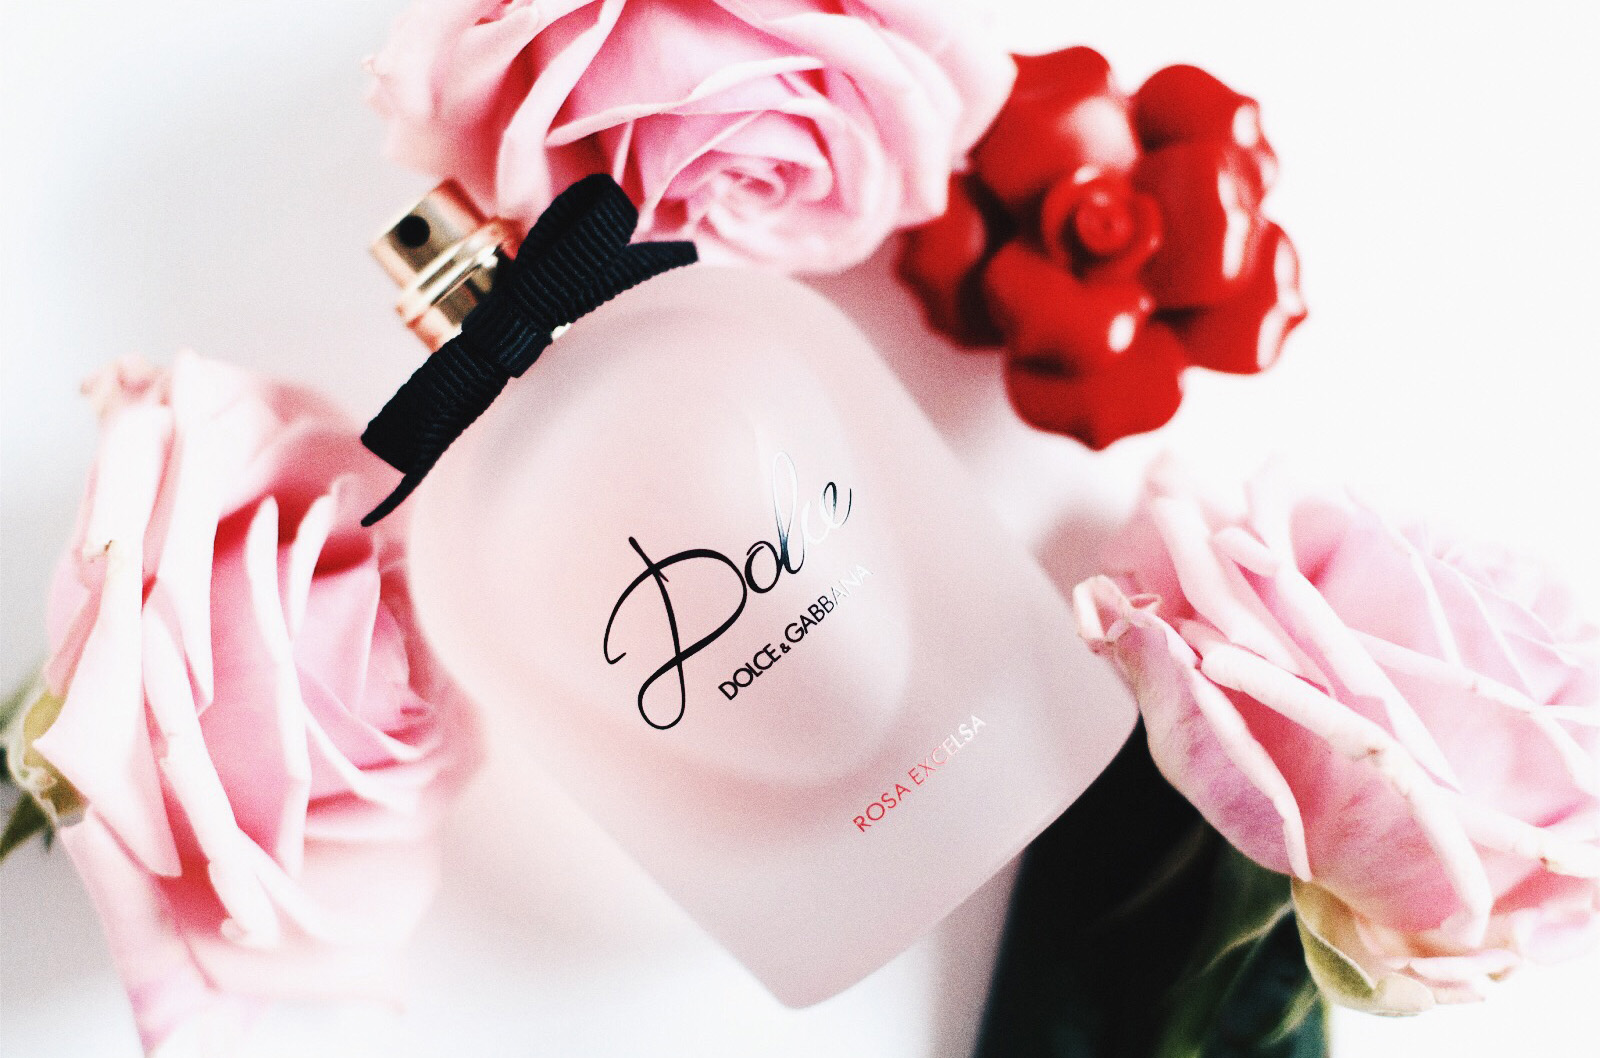 042baf47 The Fresh New Scent of 2016 by Dolce & Gabbana. Rosey, addictive and  seductive. This fragrance would truly captivate and immerse you with its  scent.